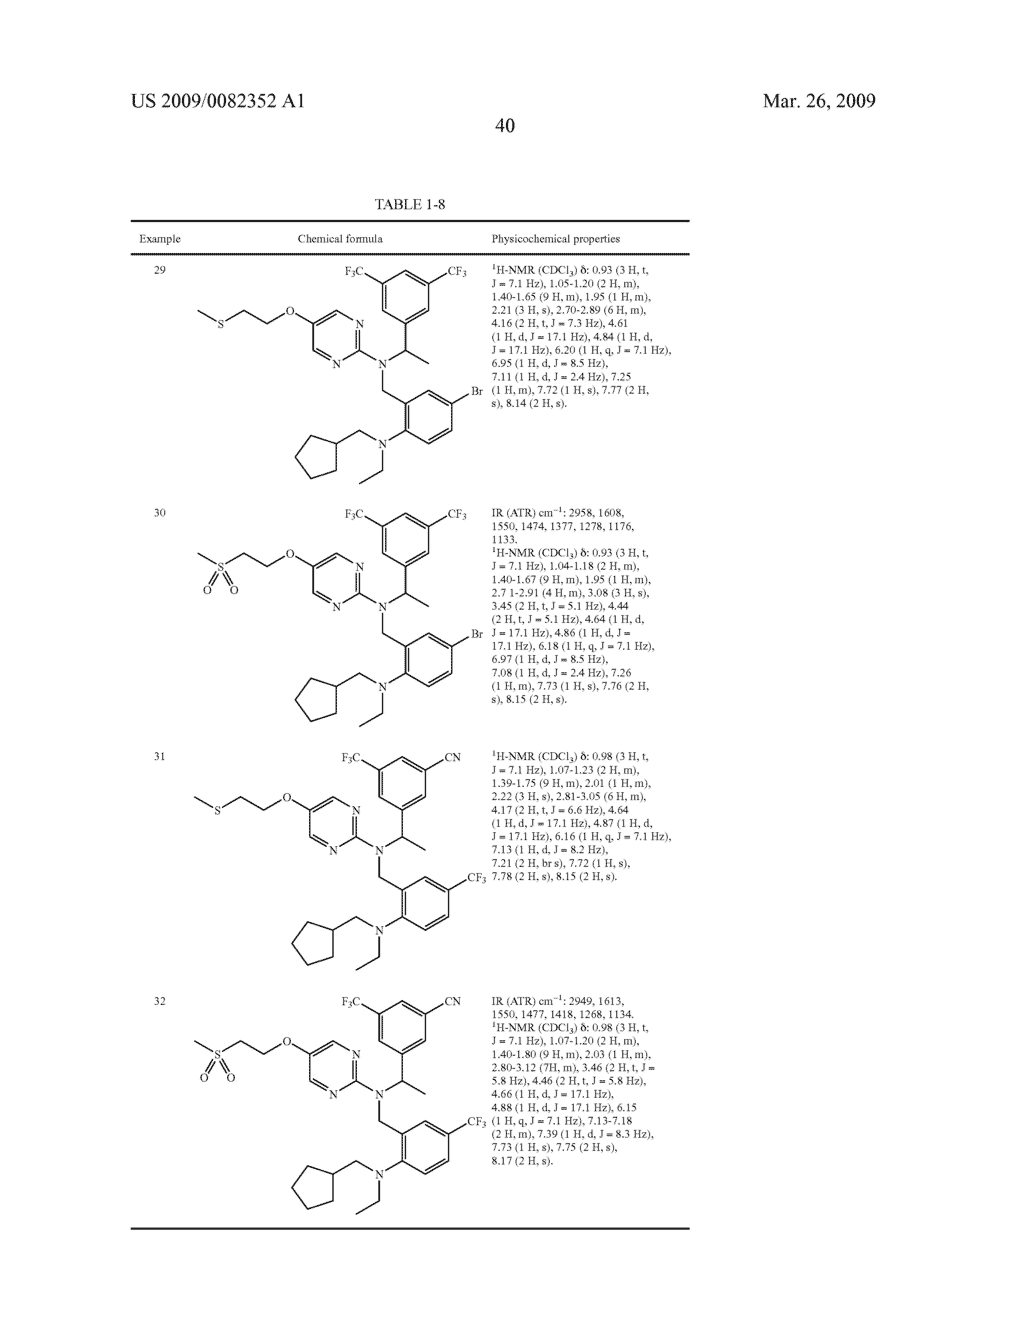 NOVEL PYRIMIDINE COMPOUND HAVING DIBENZYLAMINE STRUCTURE AND MEDICAMENT COMPRISING THE SAME - diagram, schematic, and image 42